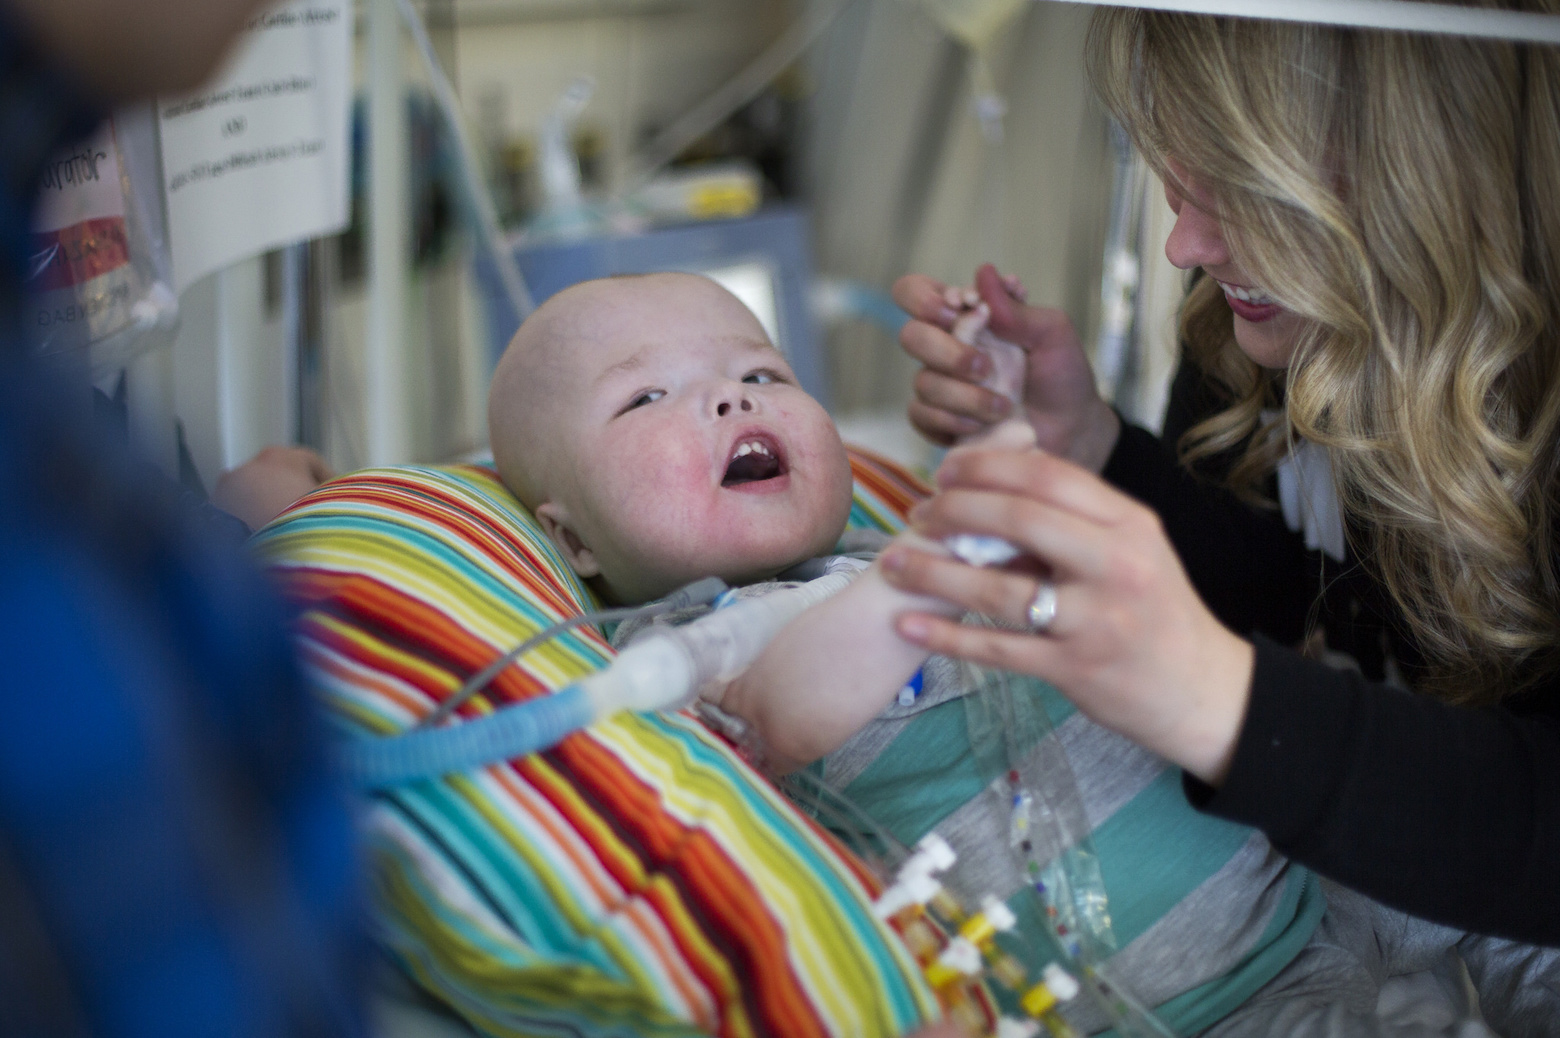 Natalie Peterson spends time with her son, Garrett, at Mott's Children Hospital in Ann Arbor, MI on March 4, 2014.